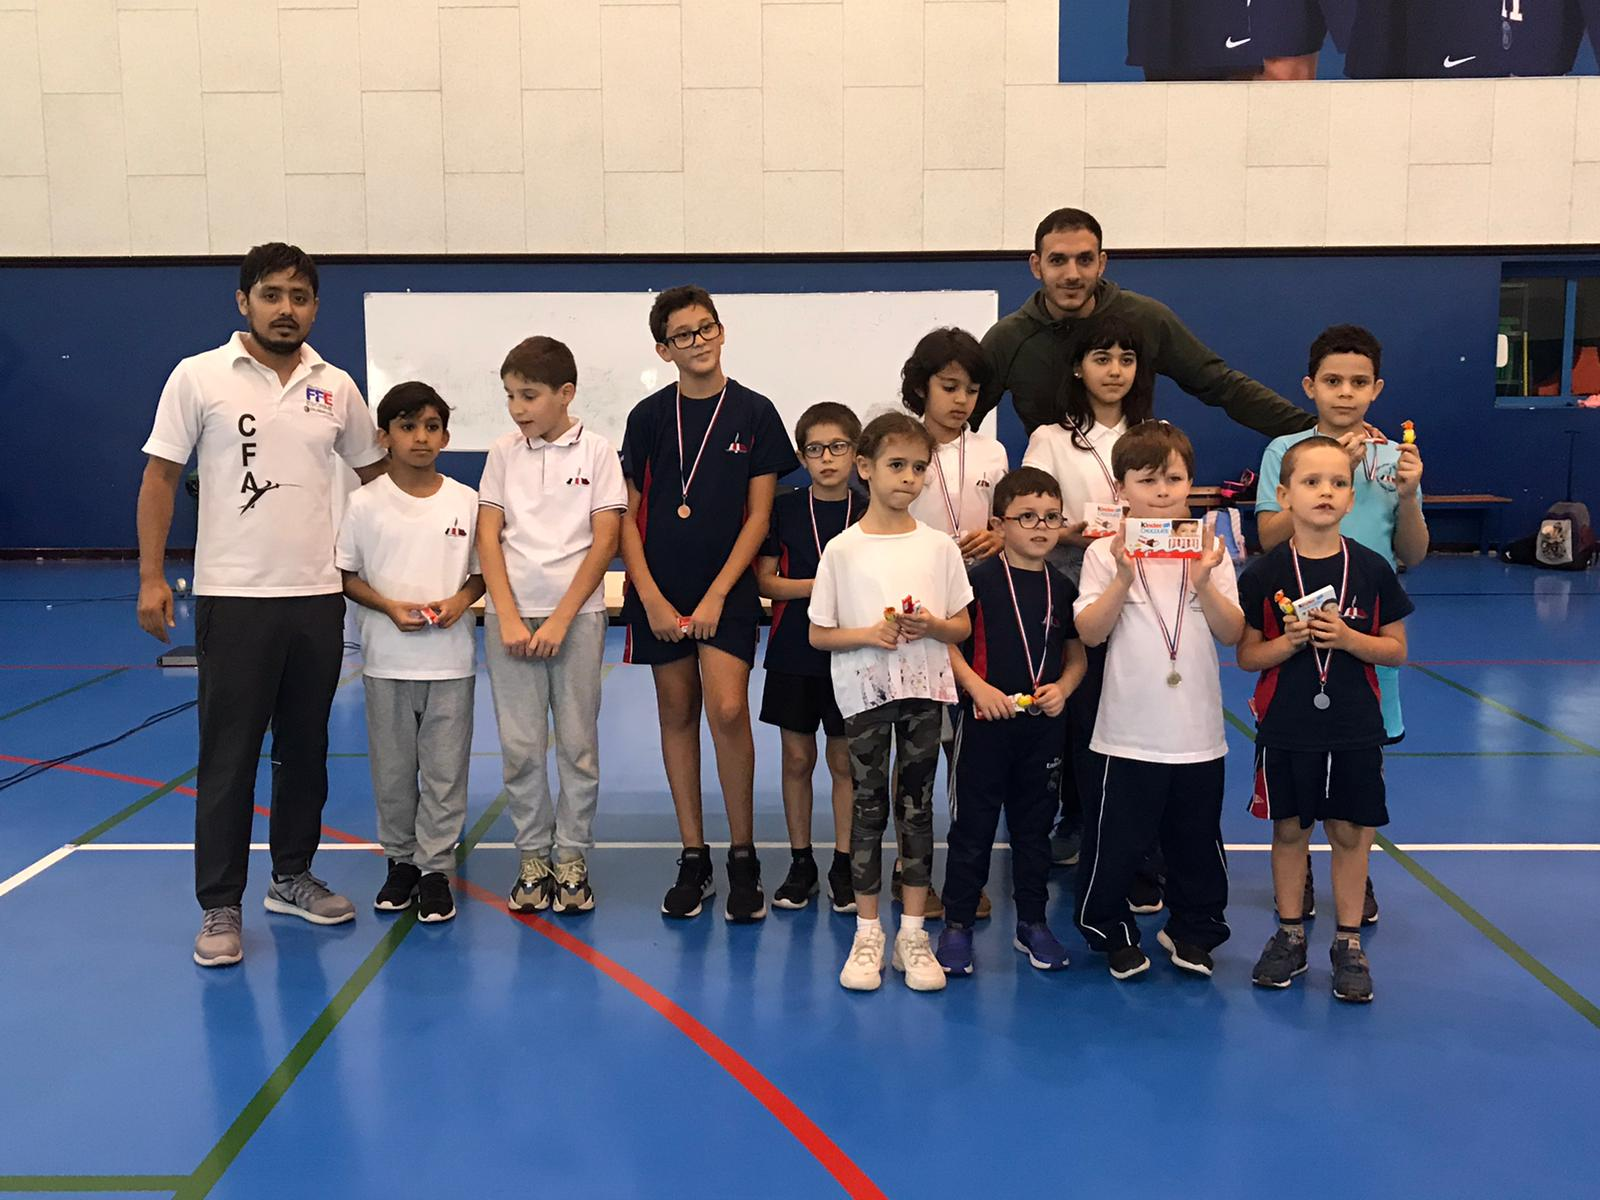 clement fencing doha